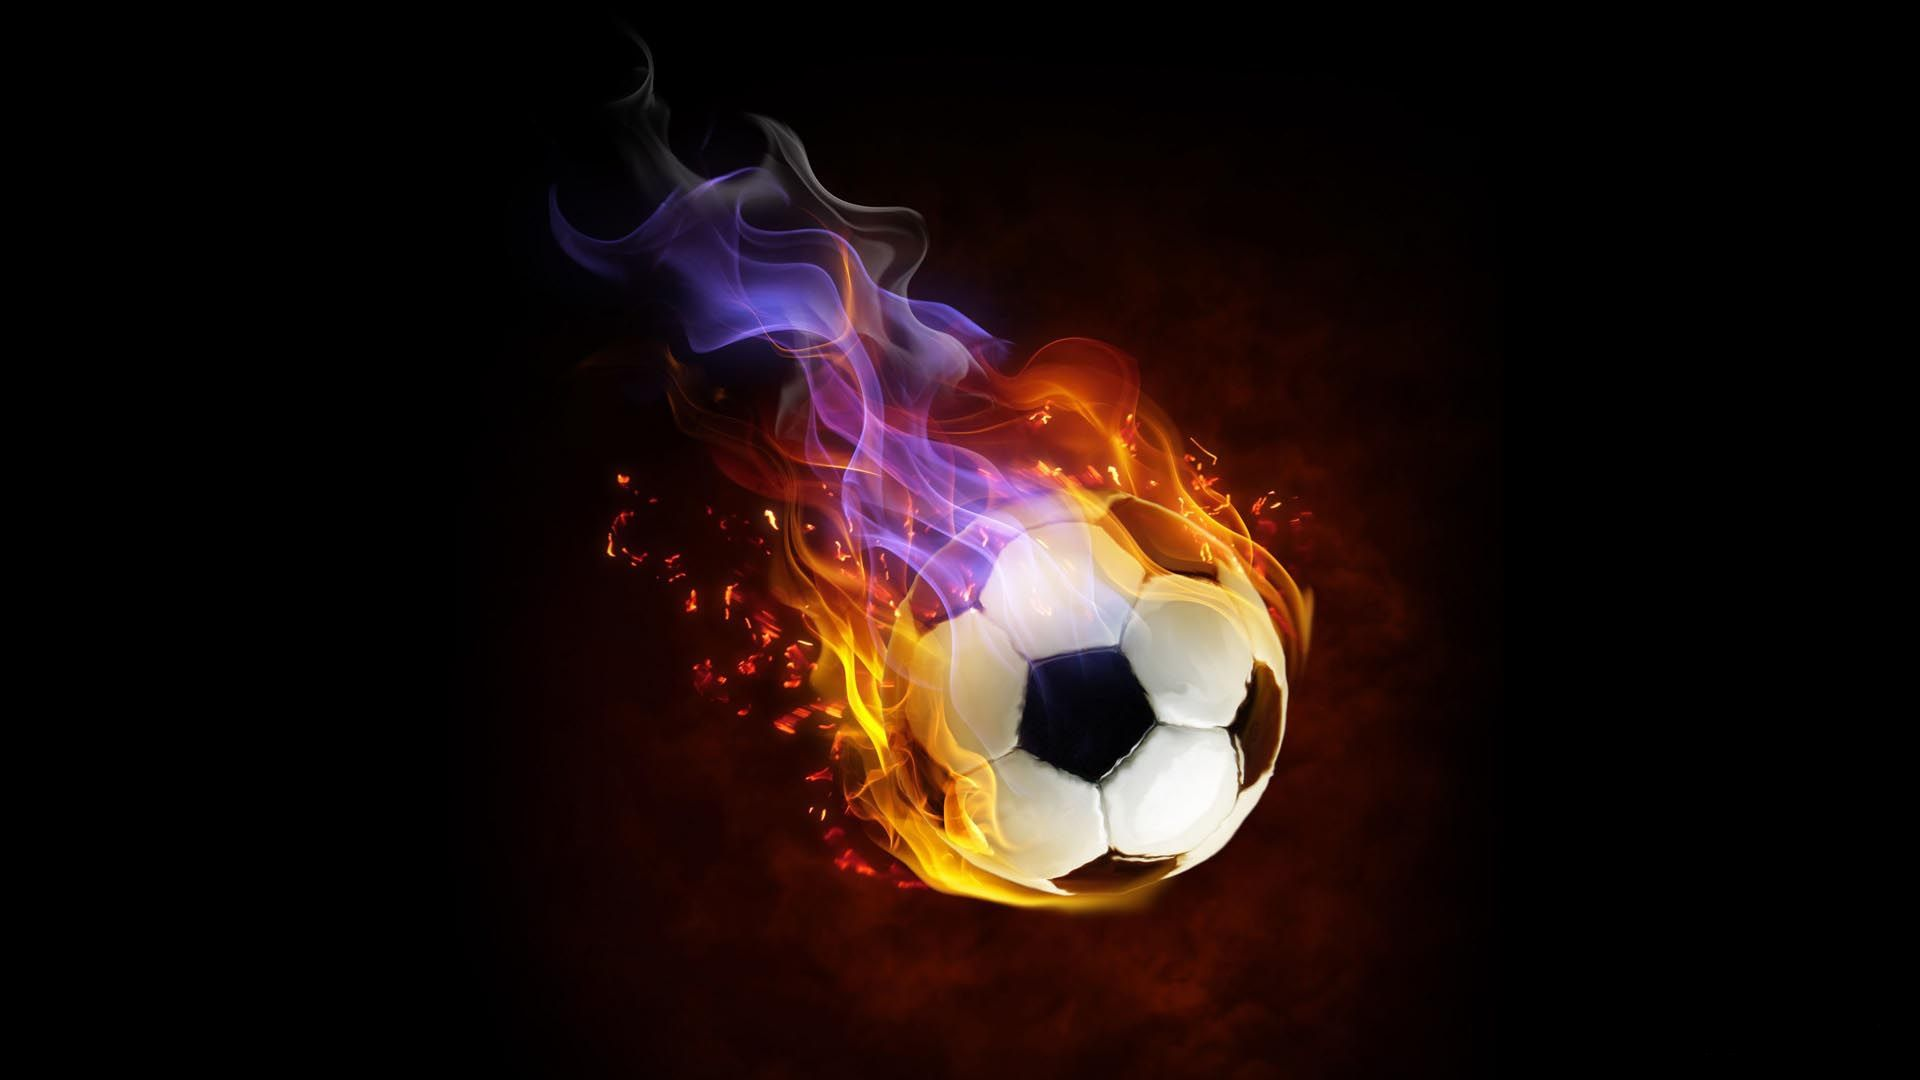 Cool Soccer Desktop Wallpapers HD Wallpapers Pinterest